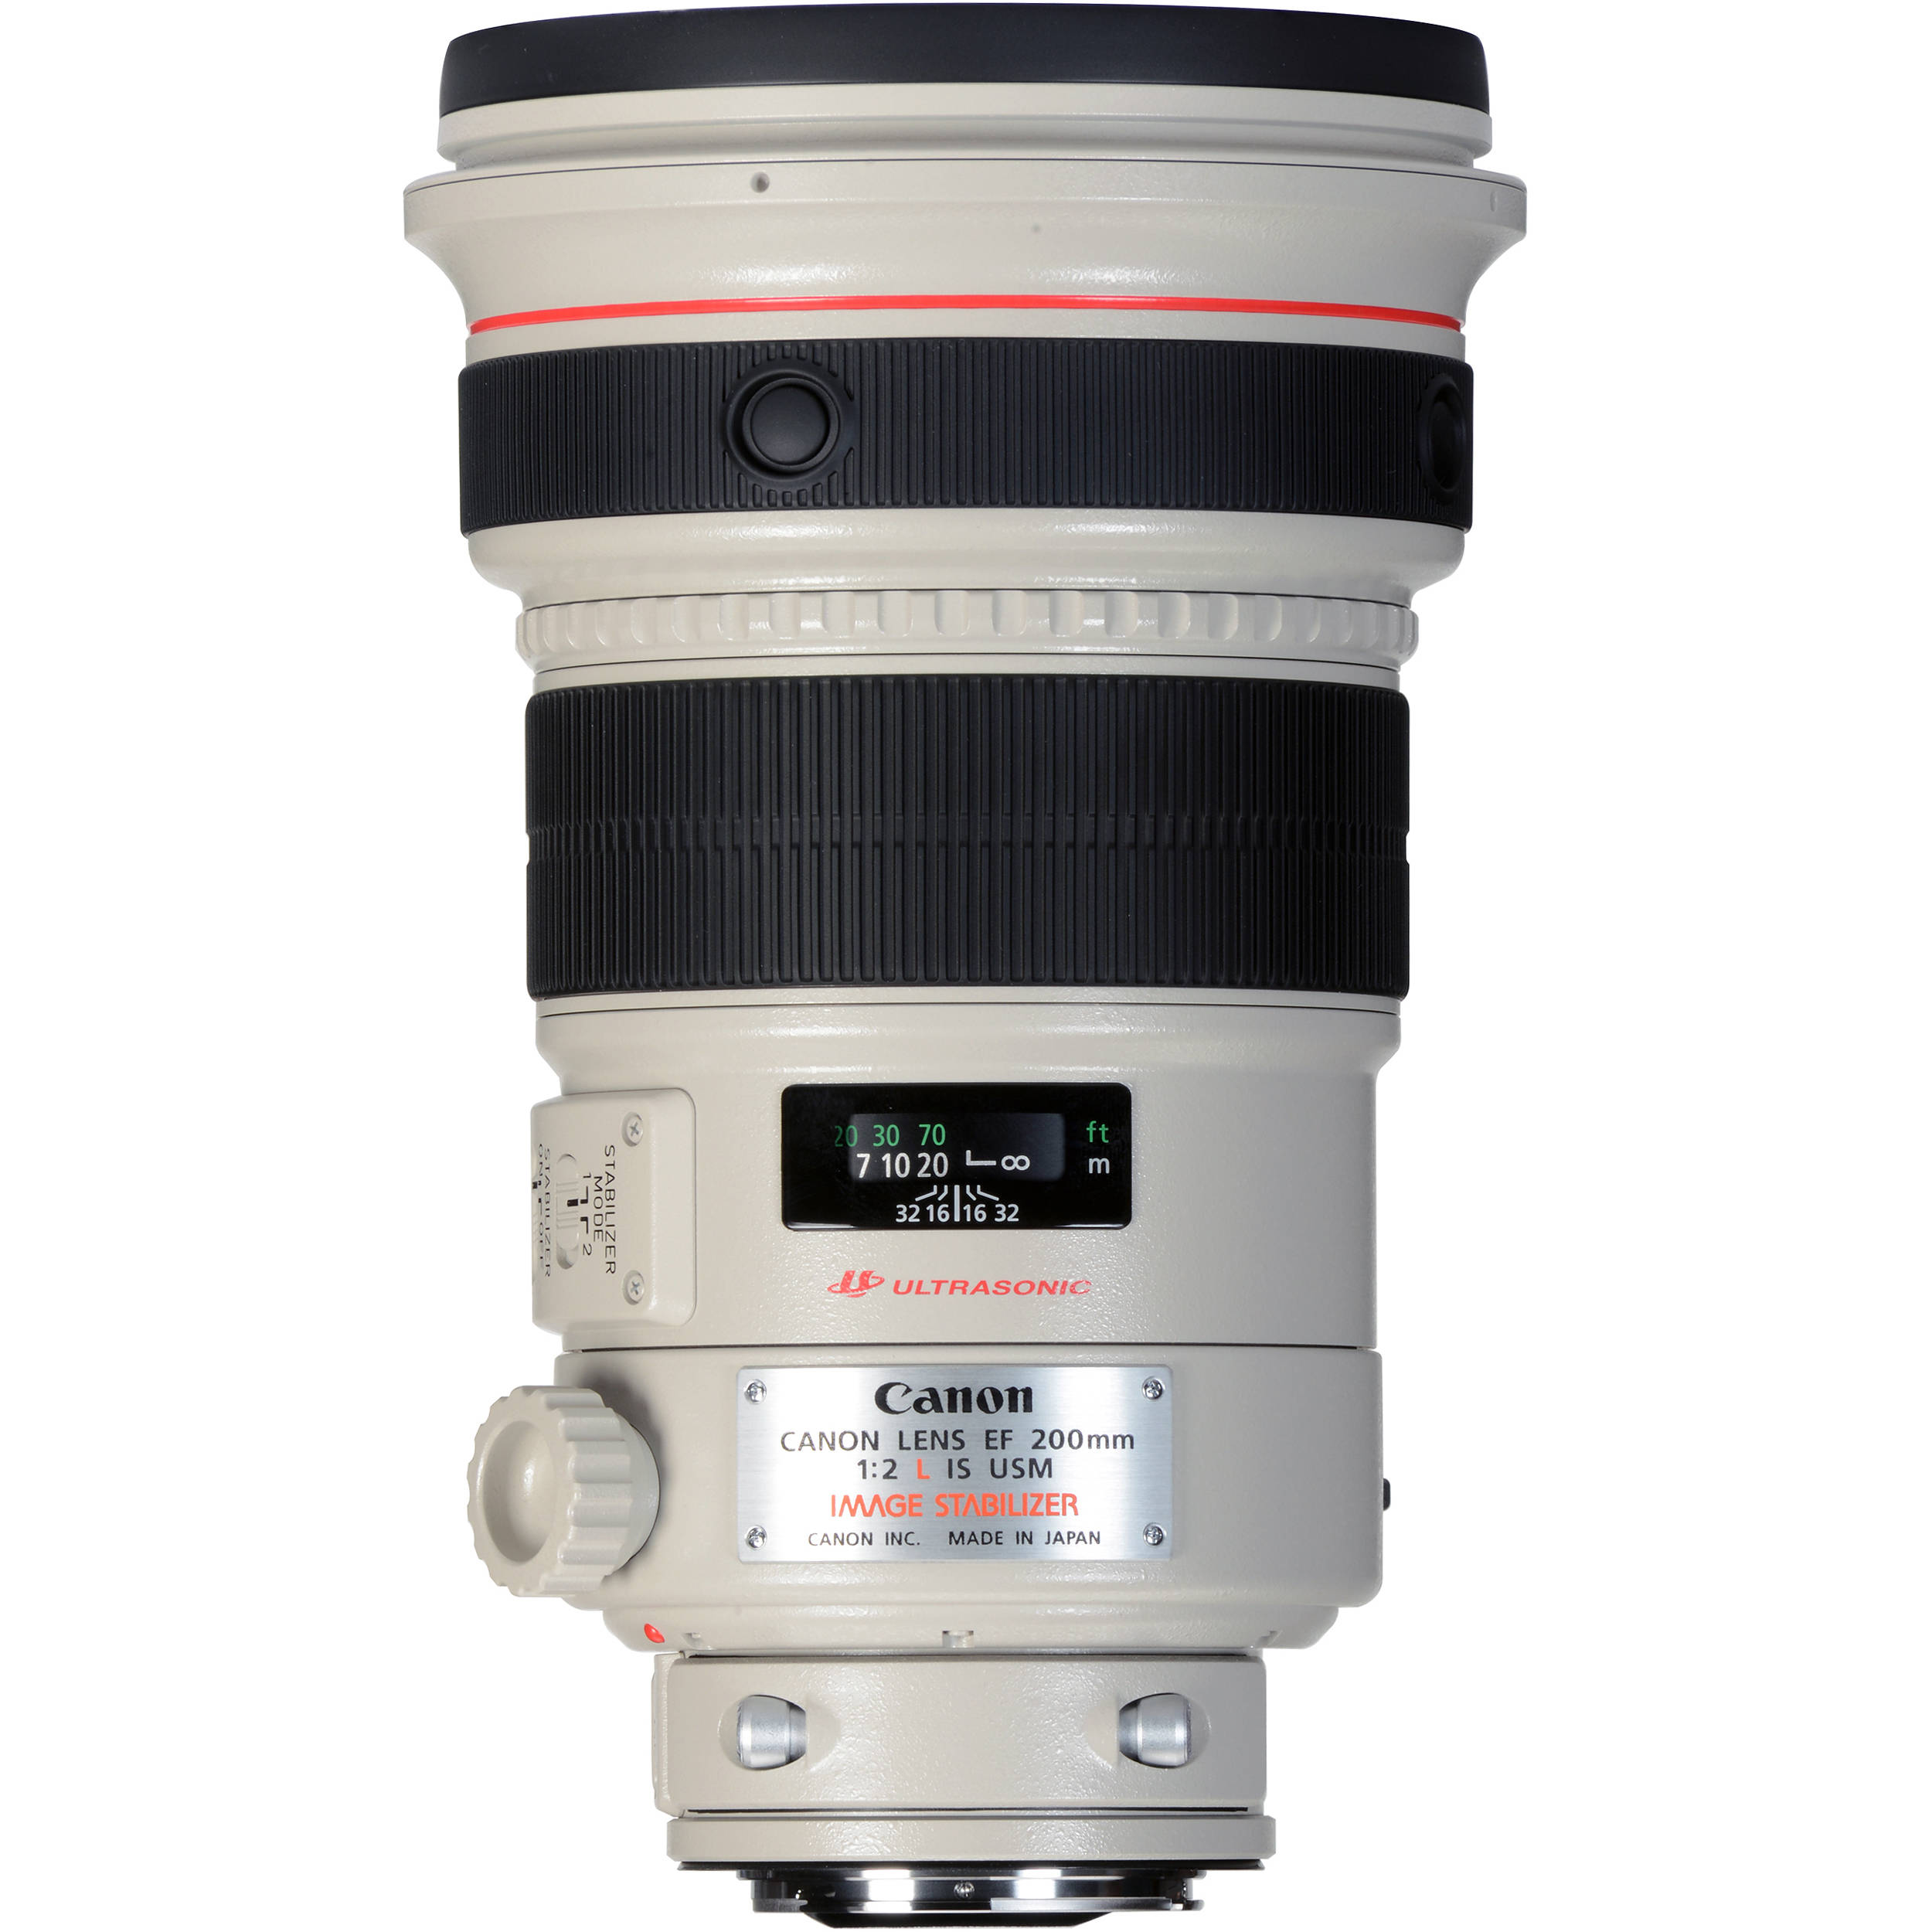 Canon Ef 200Mm F/2L Is Usm Lens 2297B002 B&Amp;H Photo Video